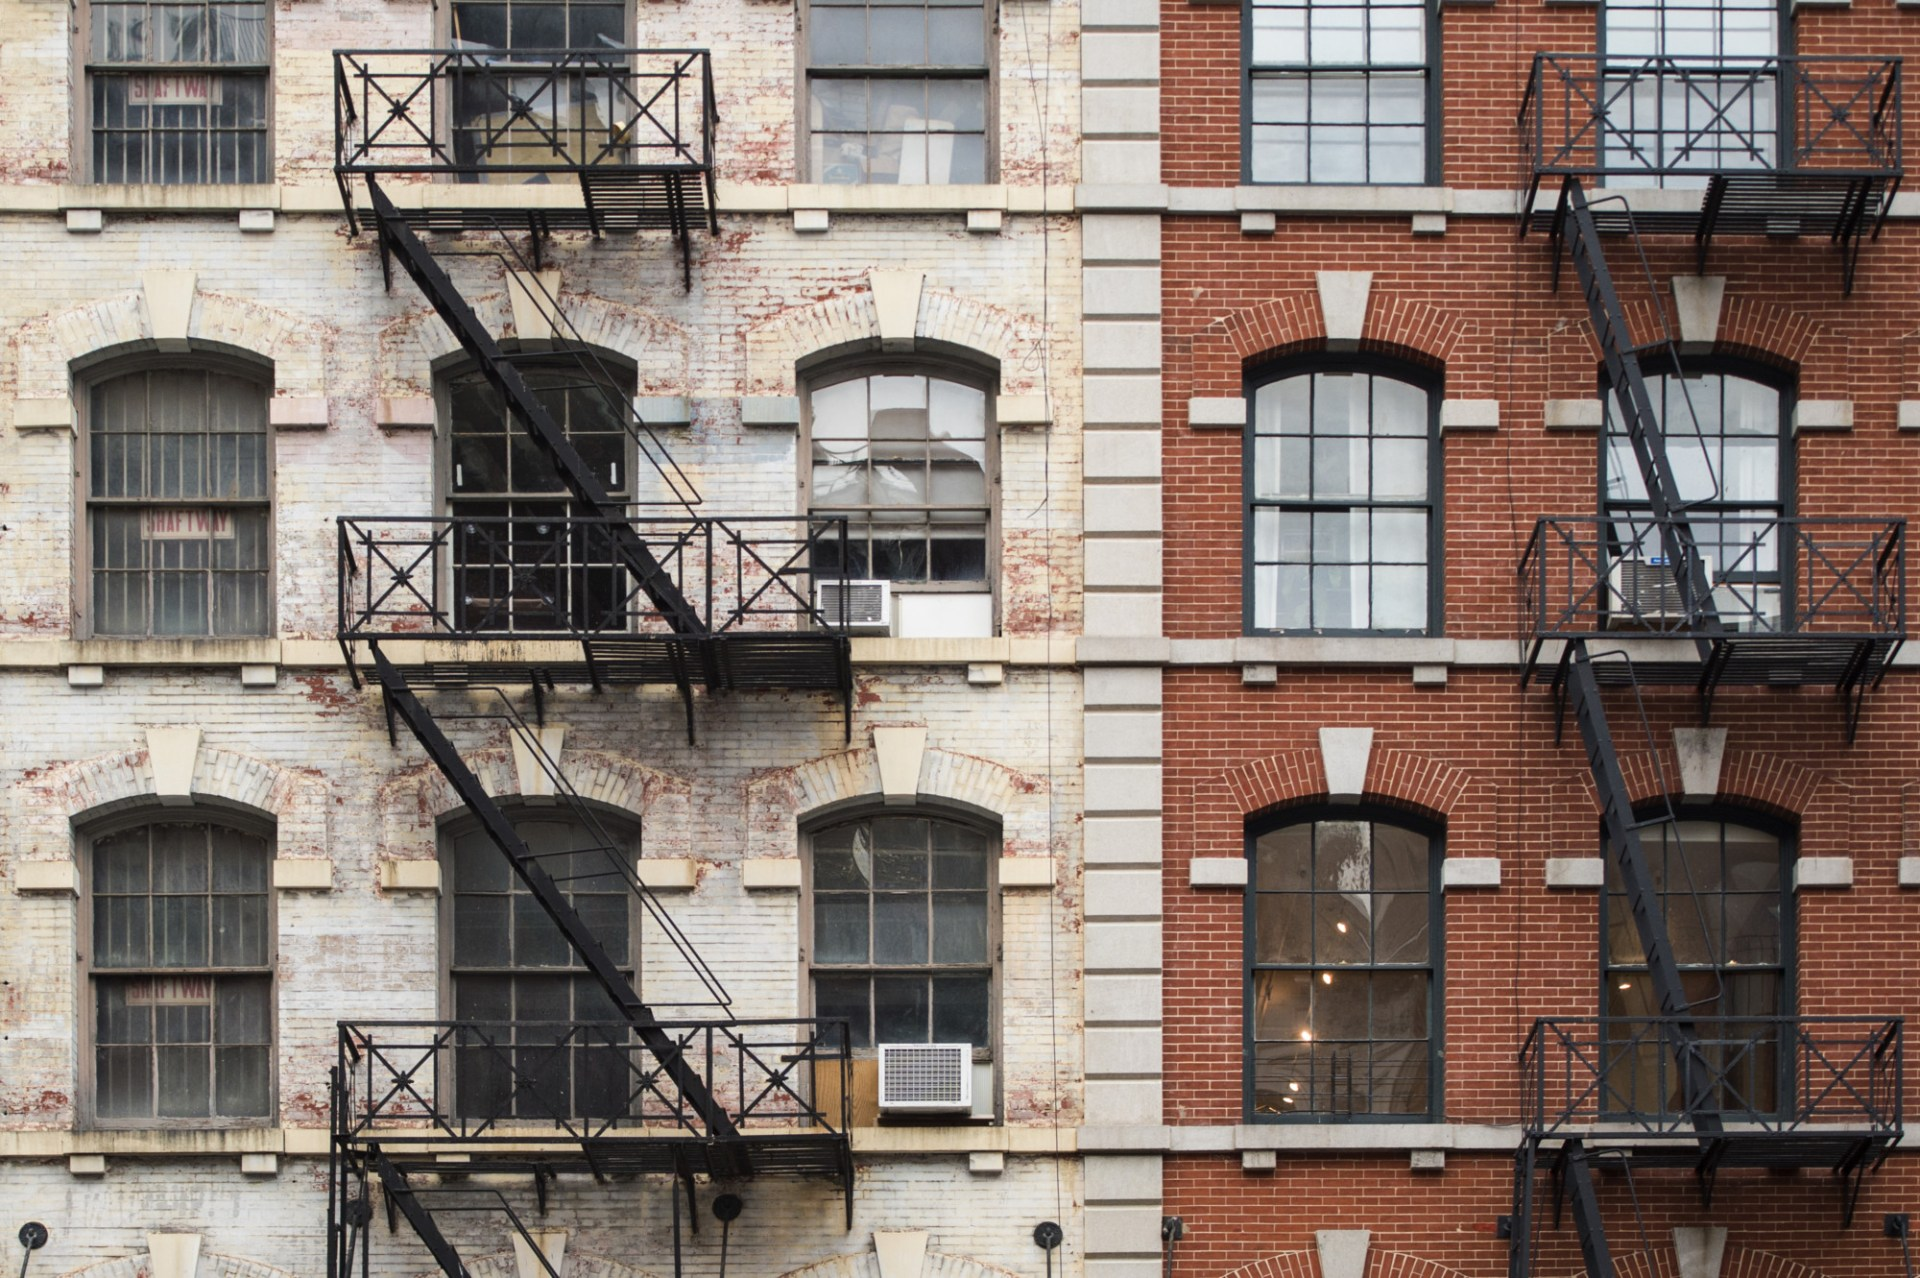 Grounds for Eviction in New York City